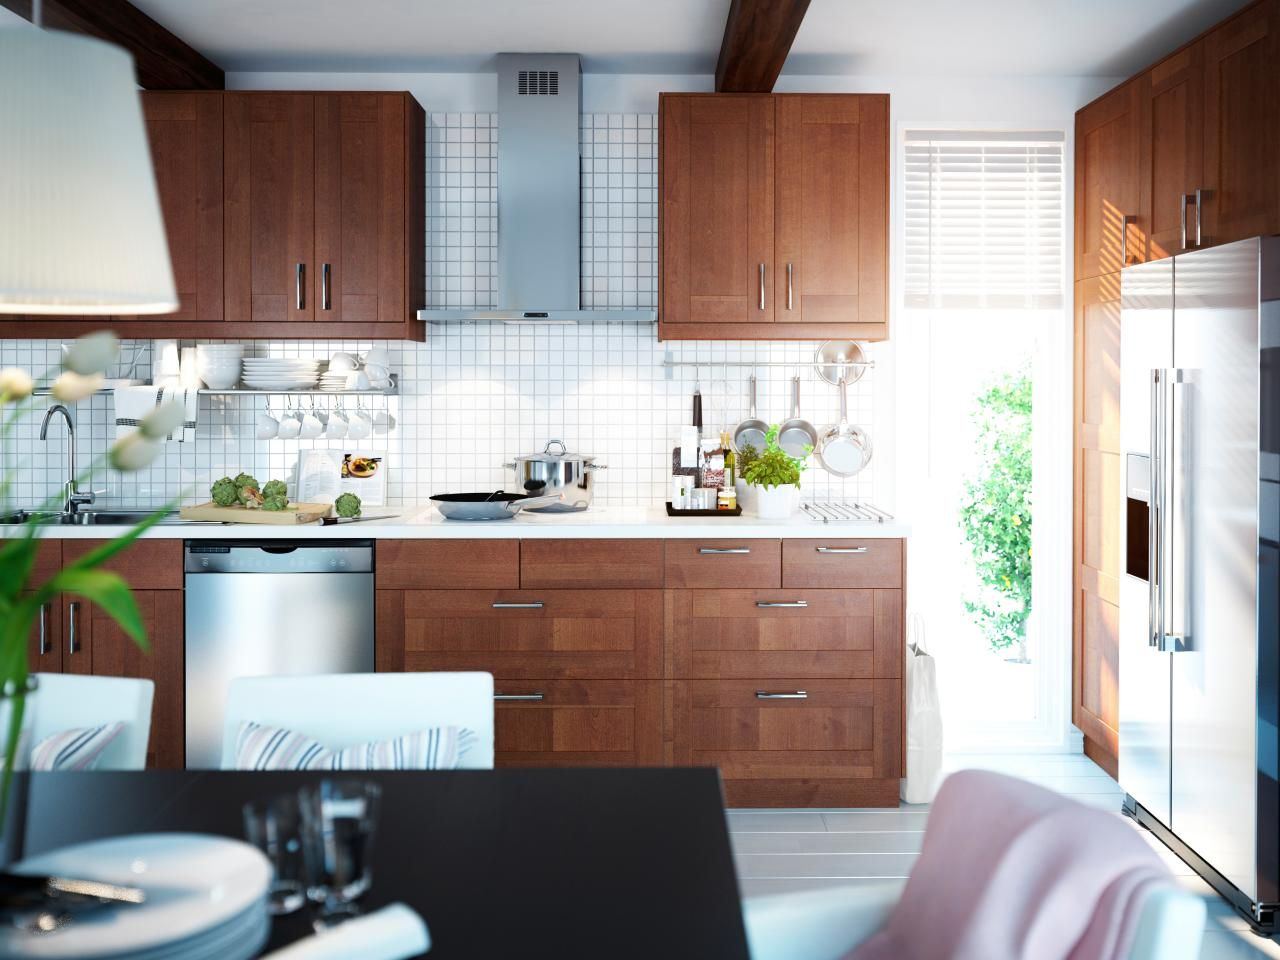 Zebra wood kitchen cabinets -  Surfaces For Contrast Backsplashes Countertops 3 Modern Hardware Or Cutout Pulls And 4 The Use Of White Cabinetry Mixed With Wood Cabinets